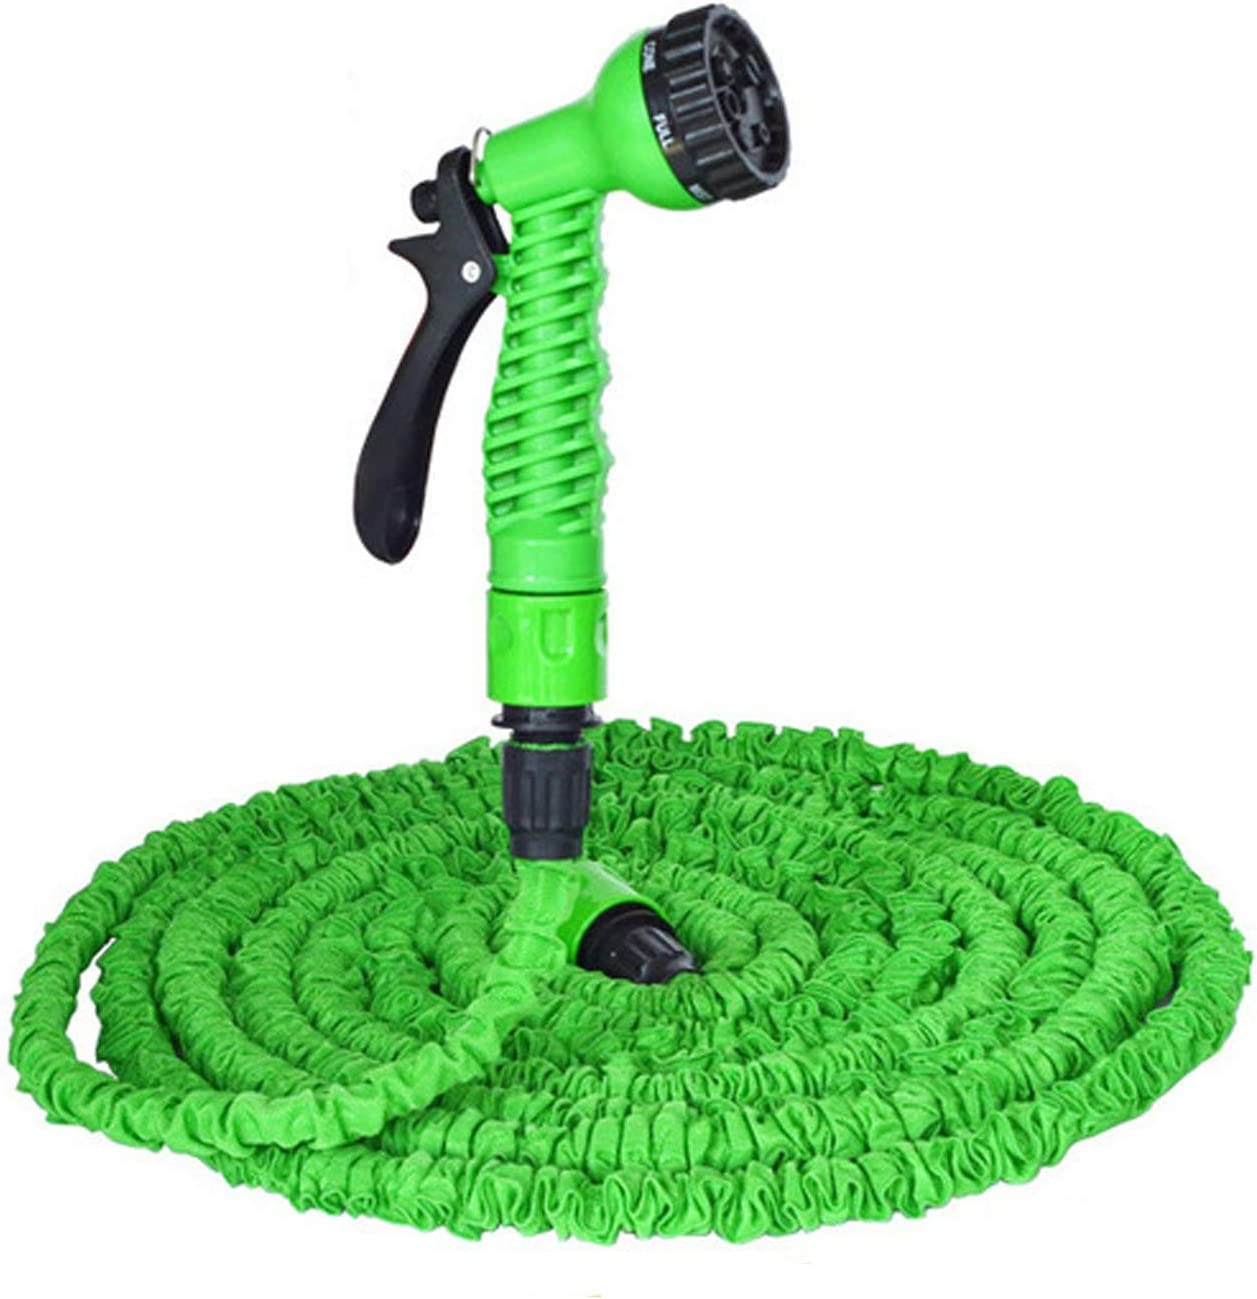 55% OFF SSCYHT Flexible and Expandable Garden 7 with Water Fun Hose [Alternative dealer]